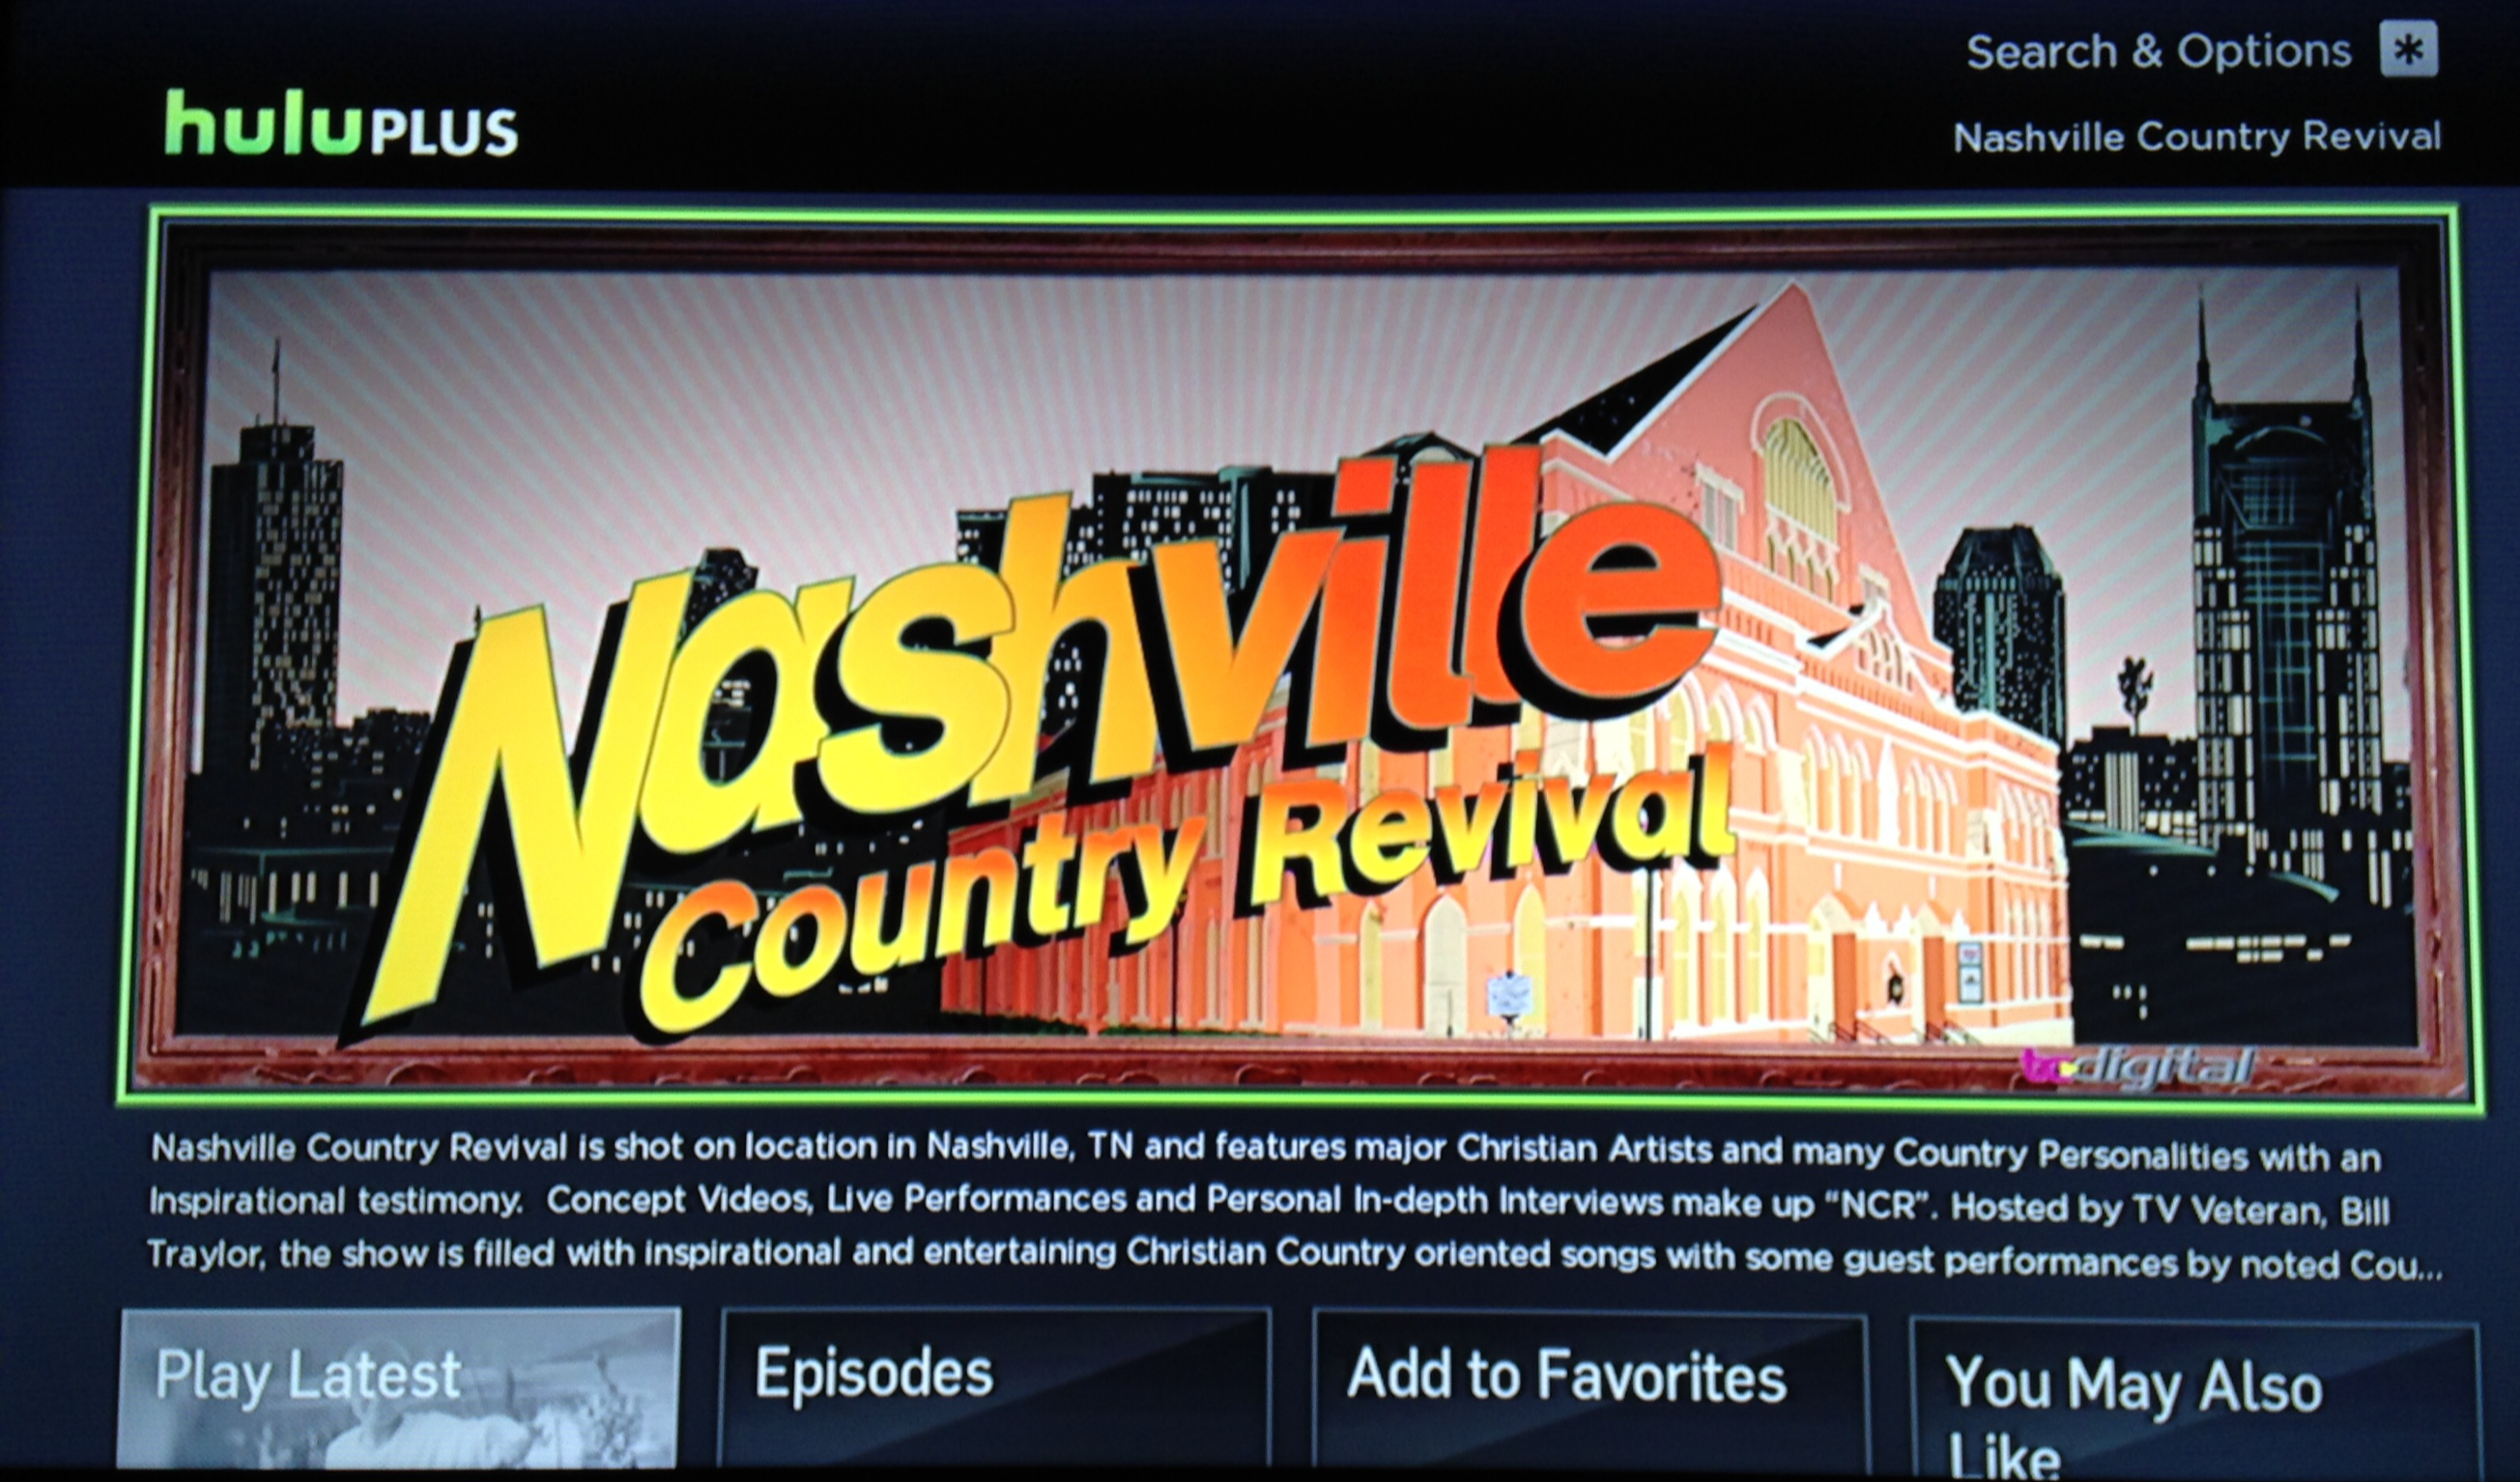 Nashville Country Revival now on Hulu